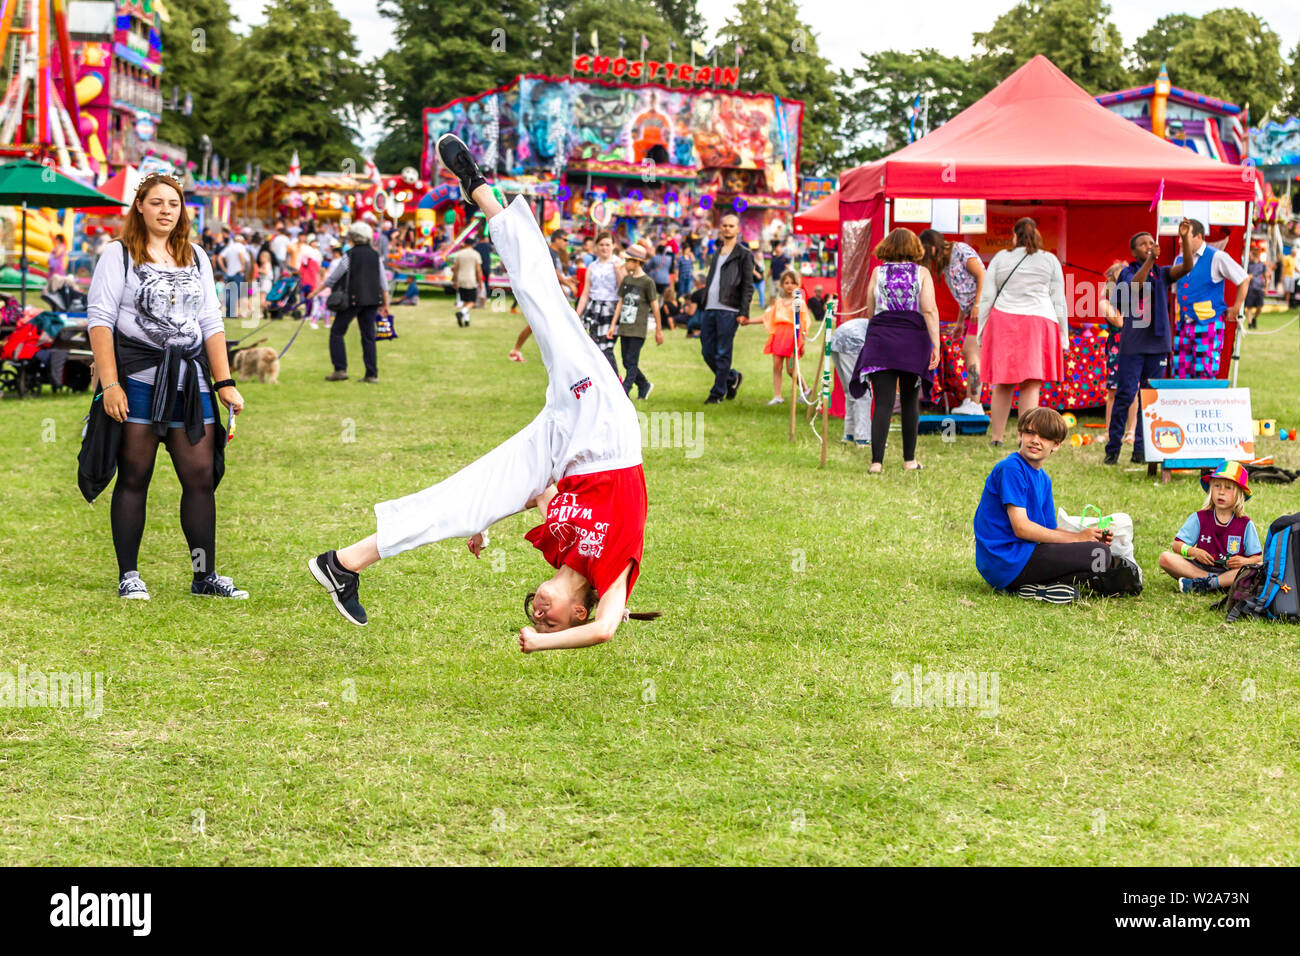 Northampton, UK. 7th July 2019. Northampton Town Show, A  young girl from the Tae Kwon-do kickboxing fitness classes doing cart wheels. Today Sunday the last day of the show the weather has greatly improved from yesterday bringing lots of people out and about. Credit: Keith J Smith./Alamy Live News - Stock Image